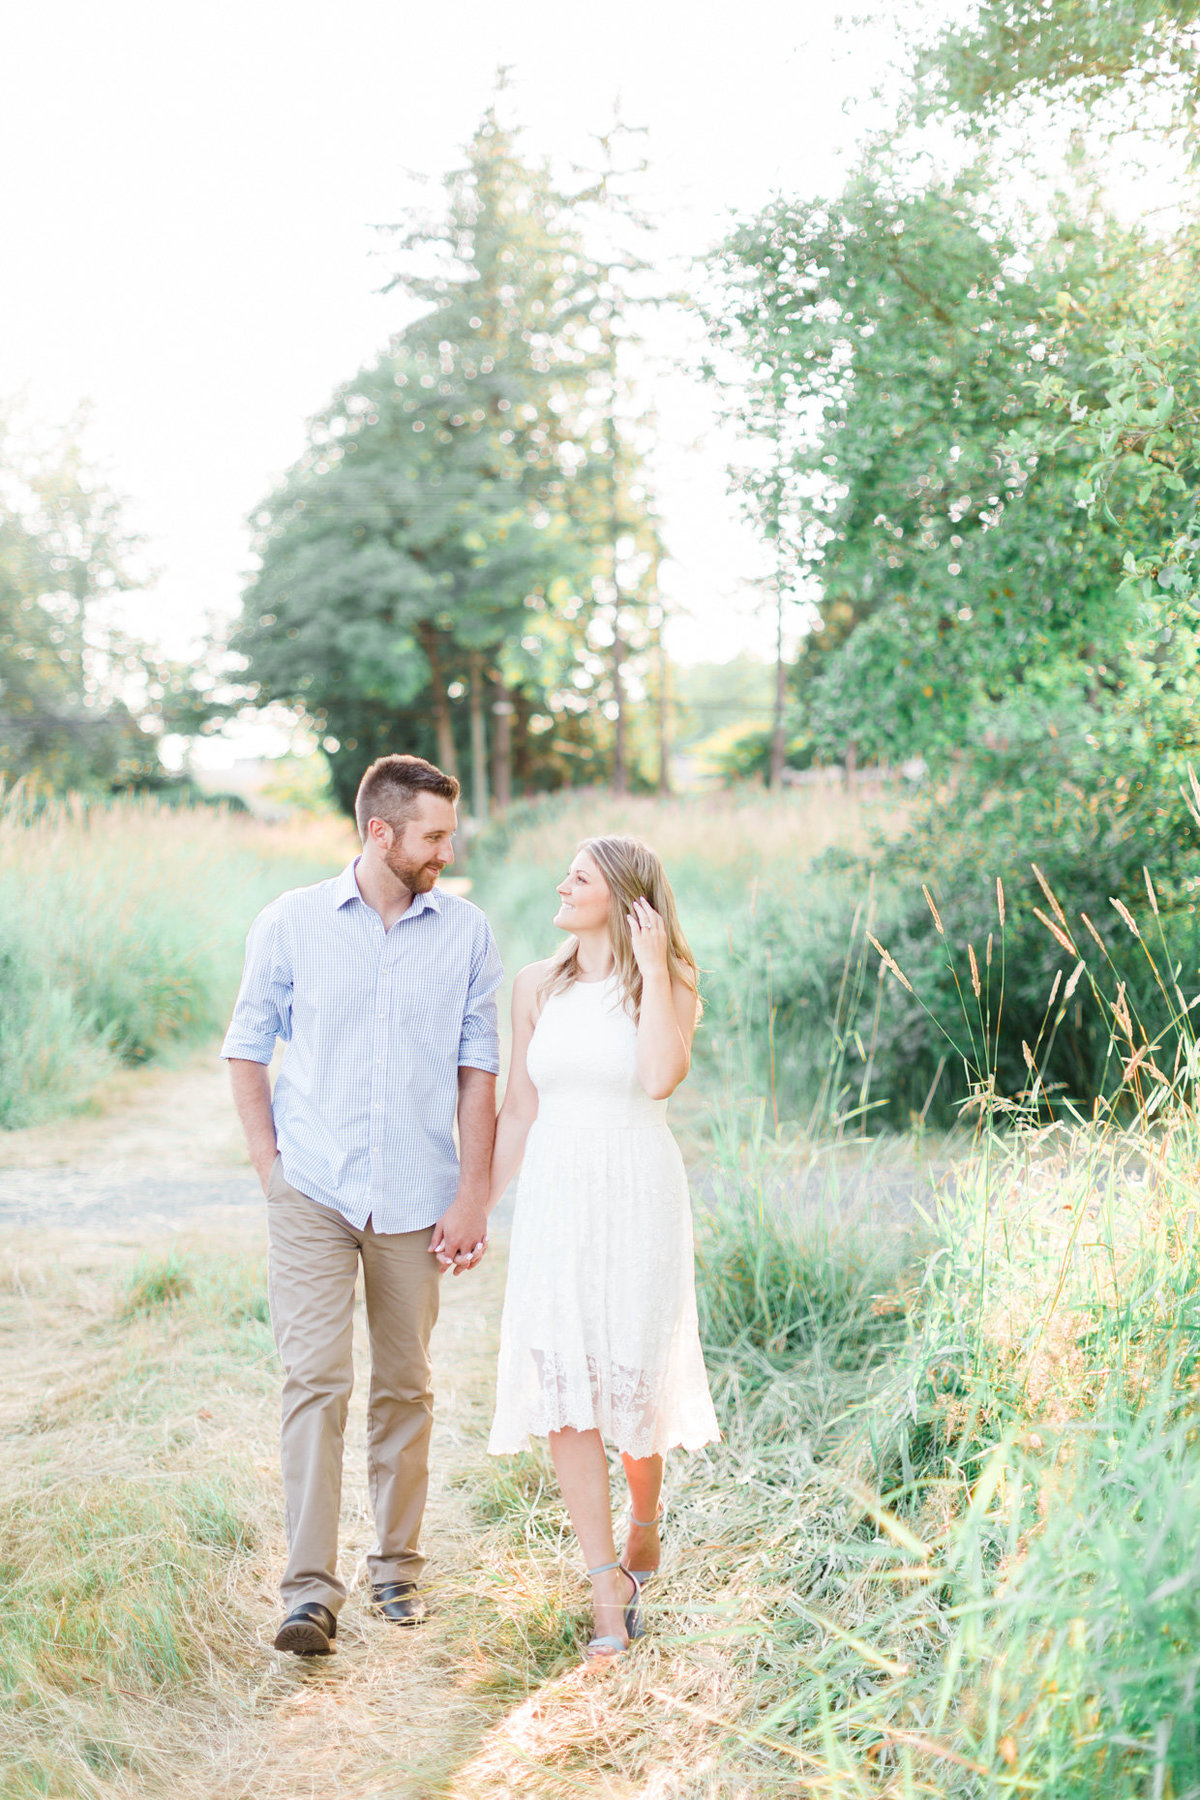 Blush-Sky-Photography-Vancouver-Engagement-Photographer-11